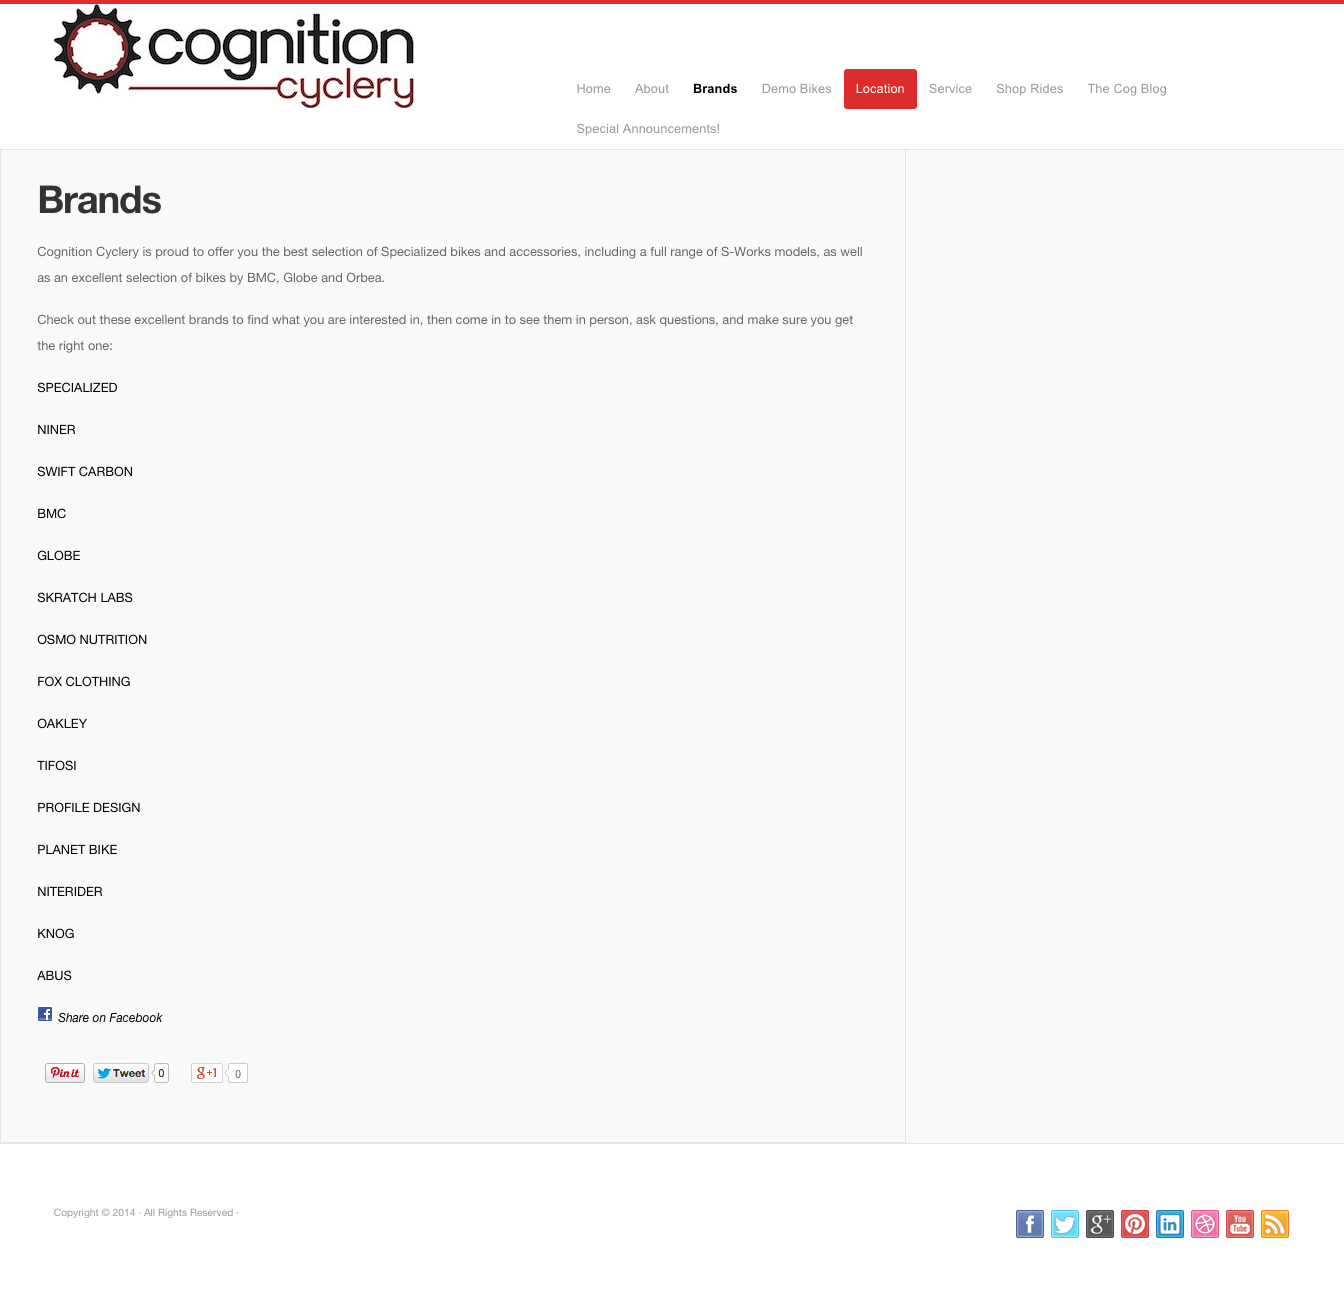 03-old-brands-cognitioncyclery_com.png